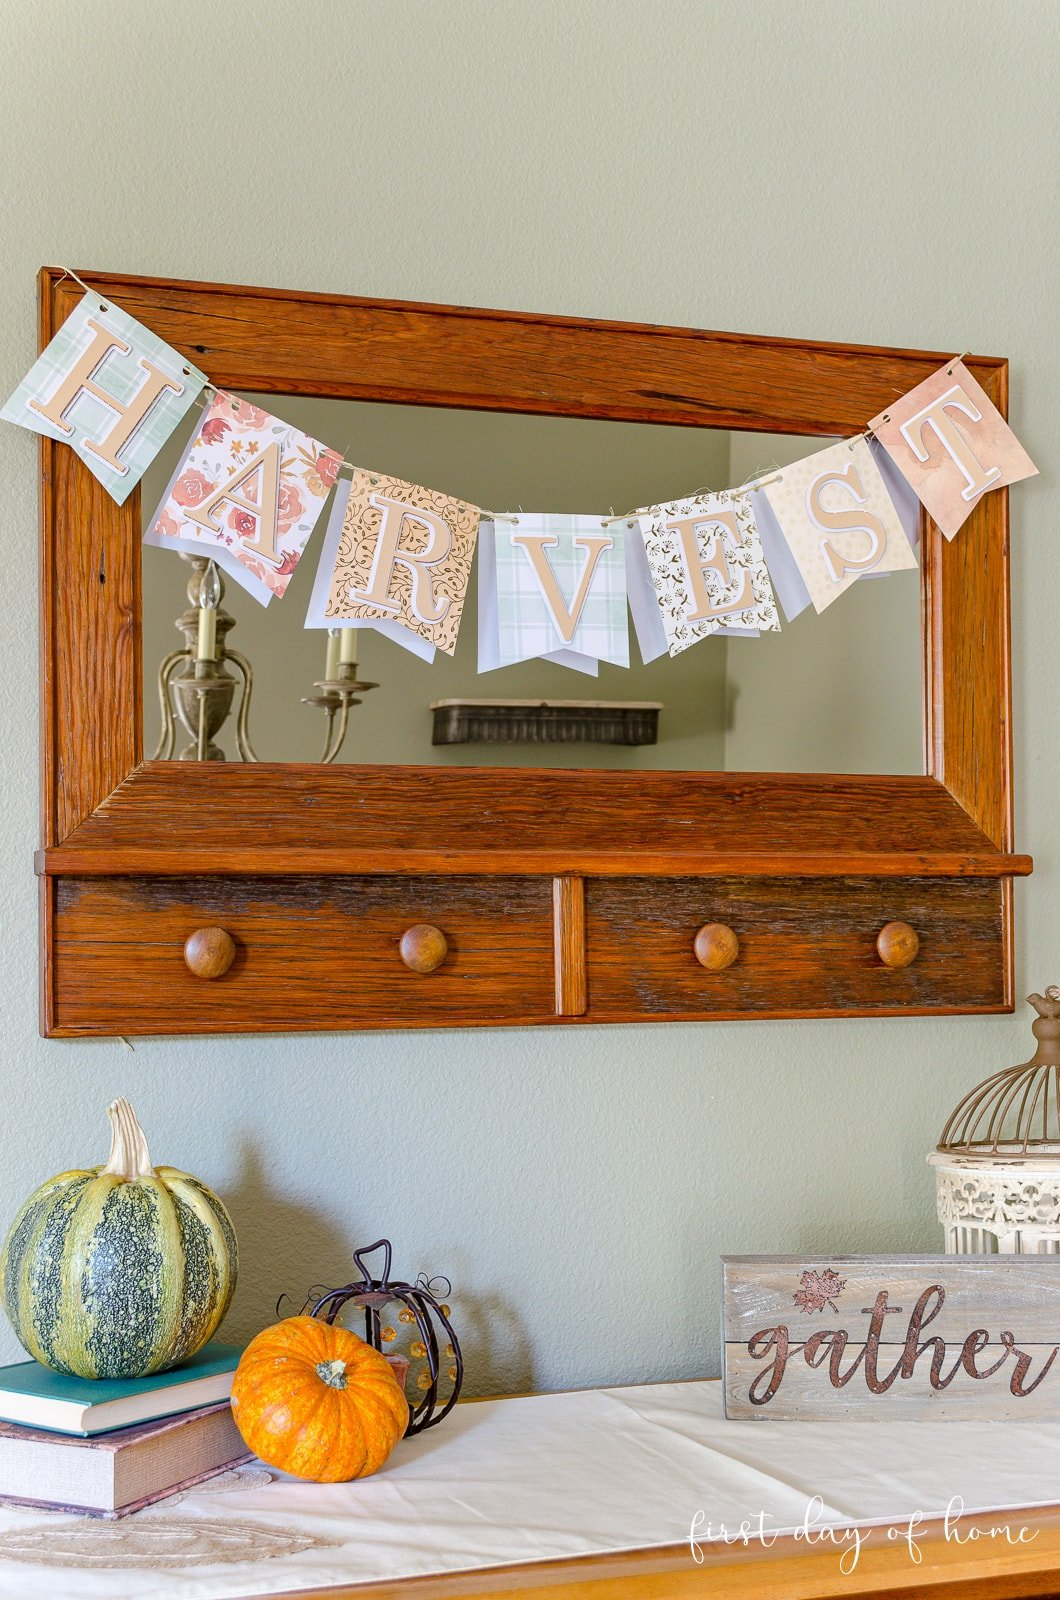 Fall banner for mantel or to hang on mirror and shelves